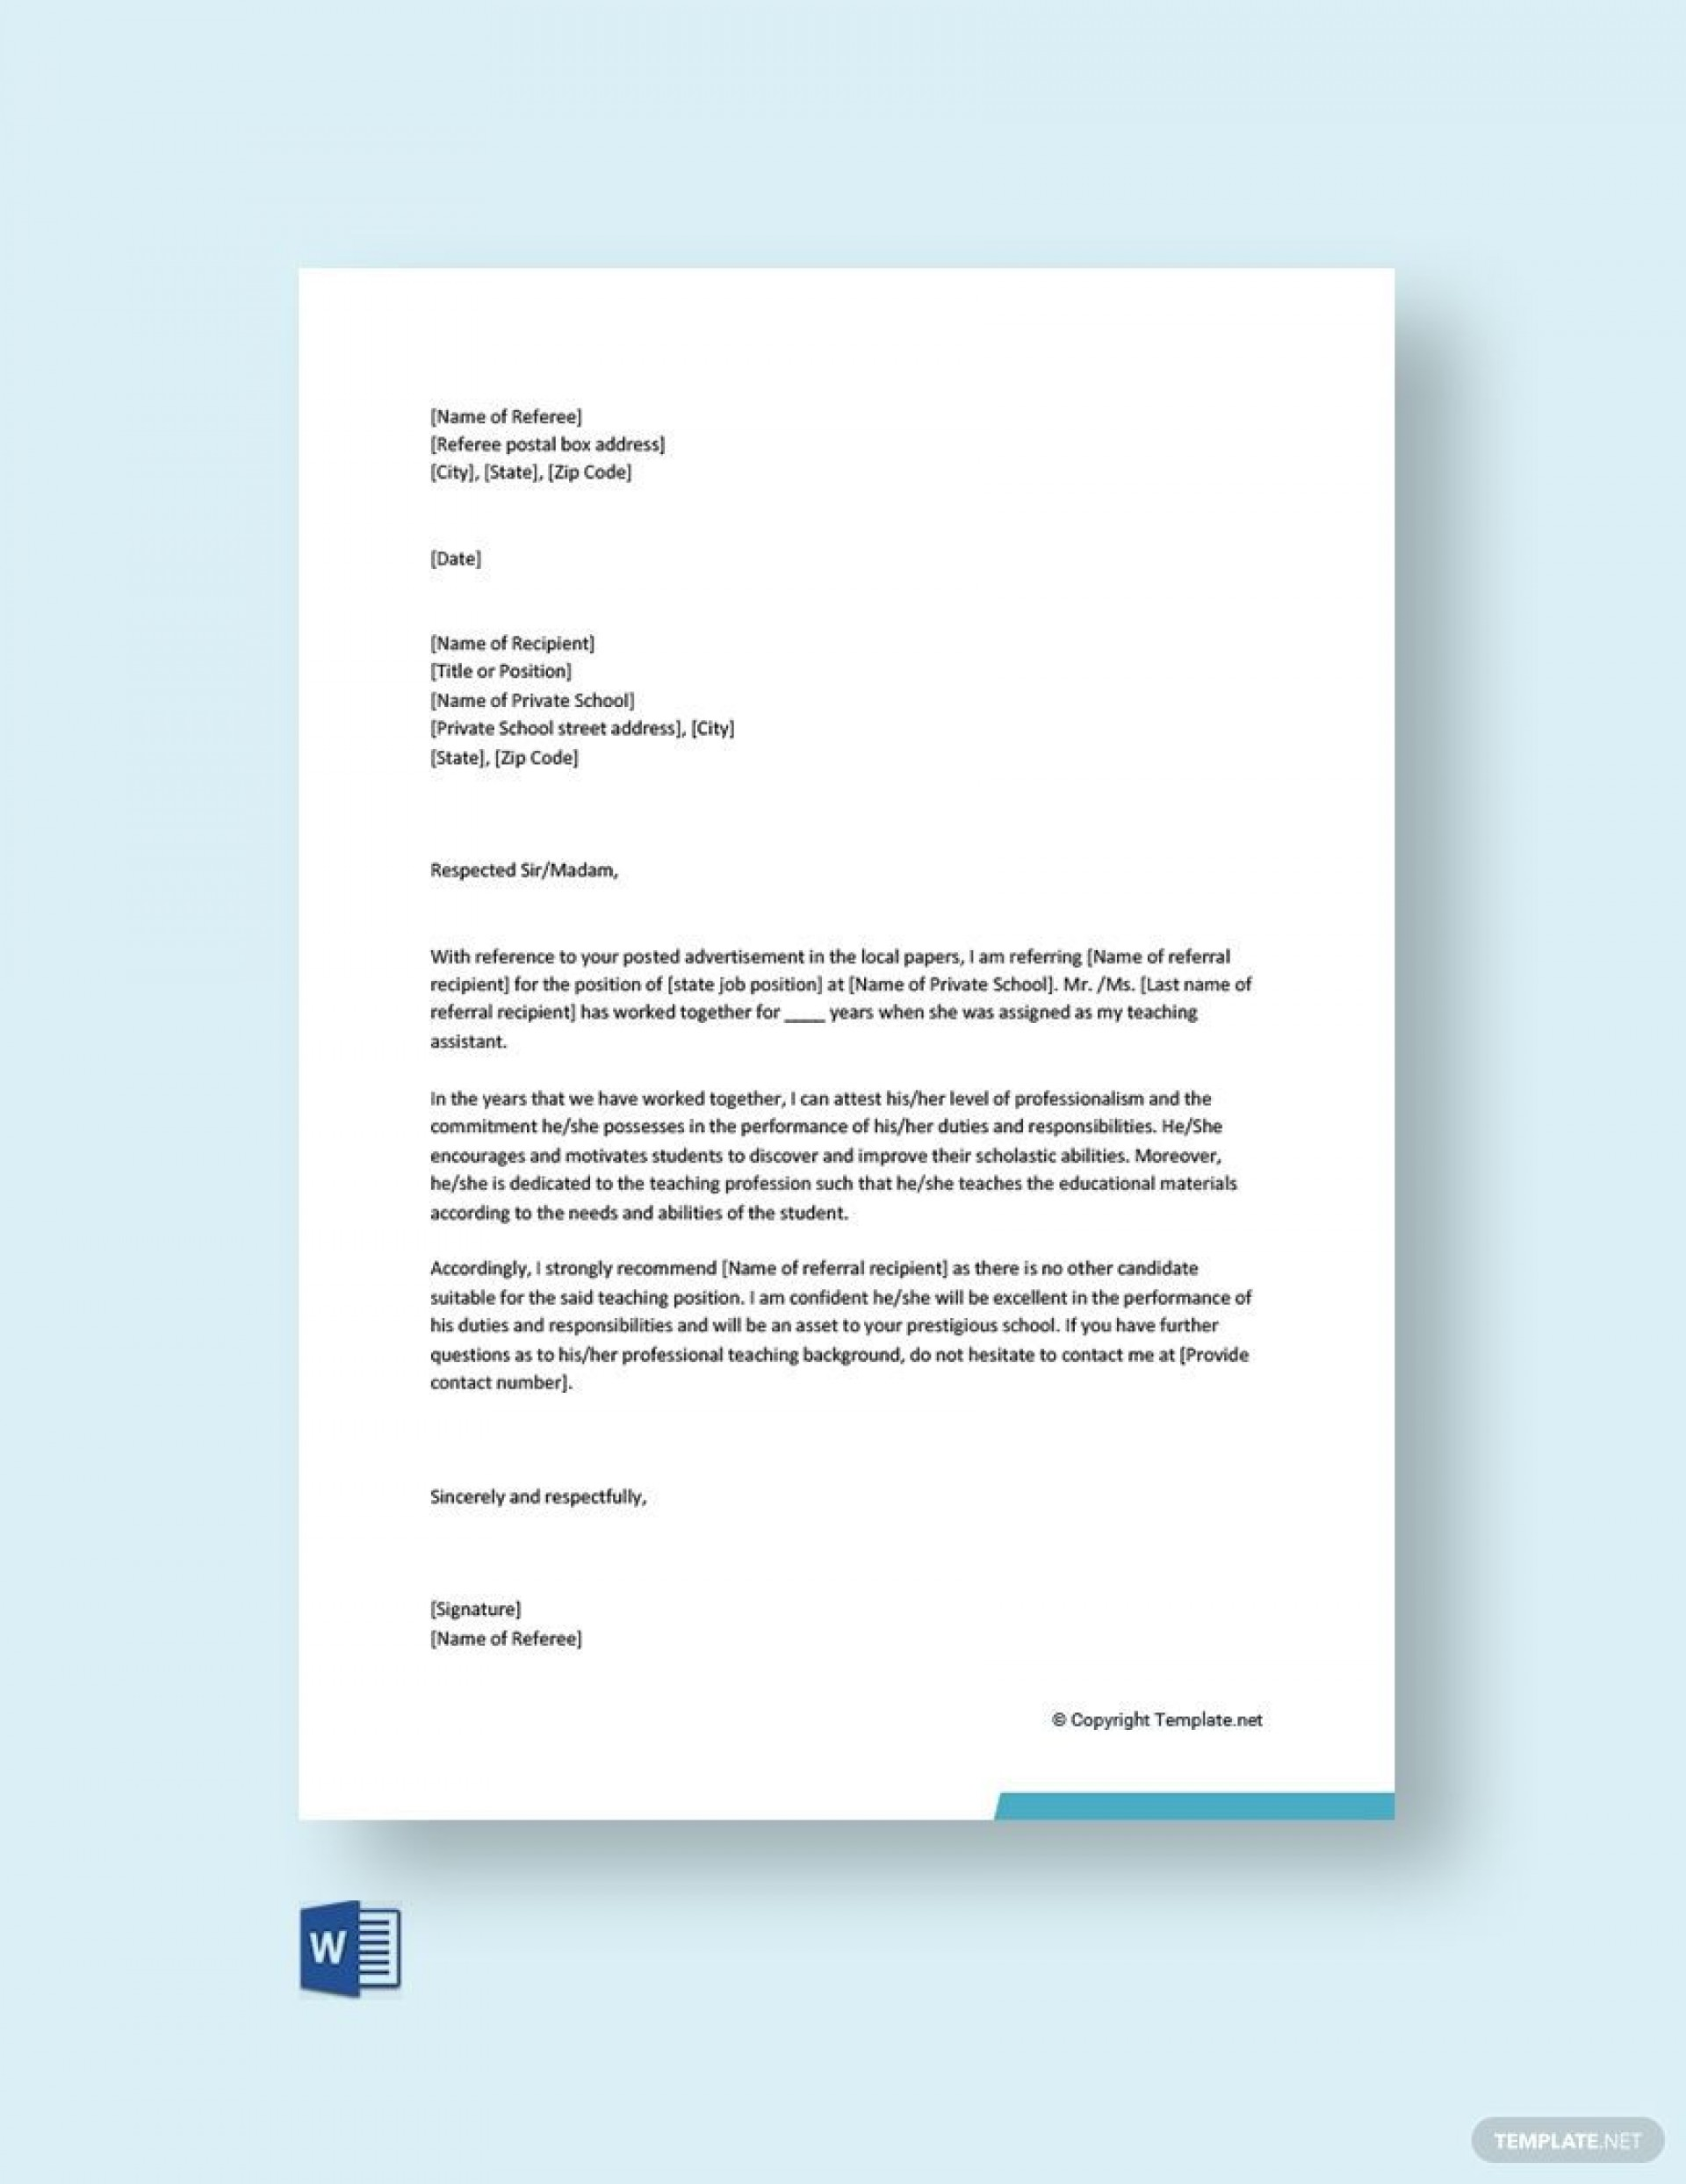 002 Unusual Free Reference Letter Template Download Image 1920